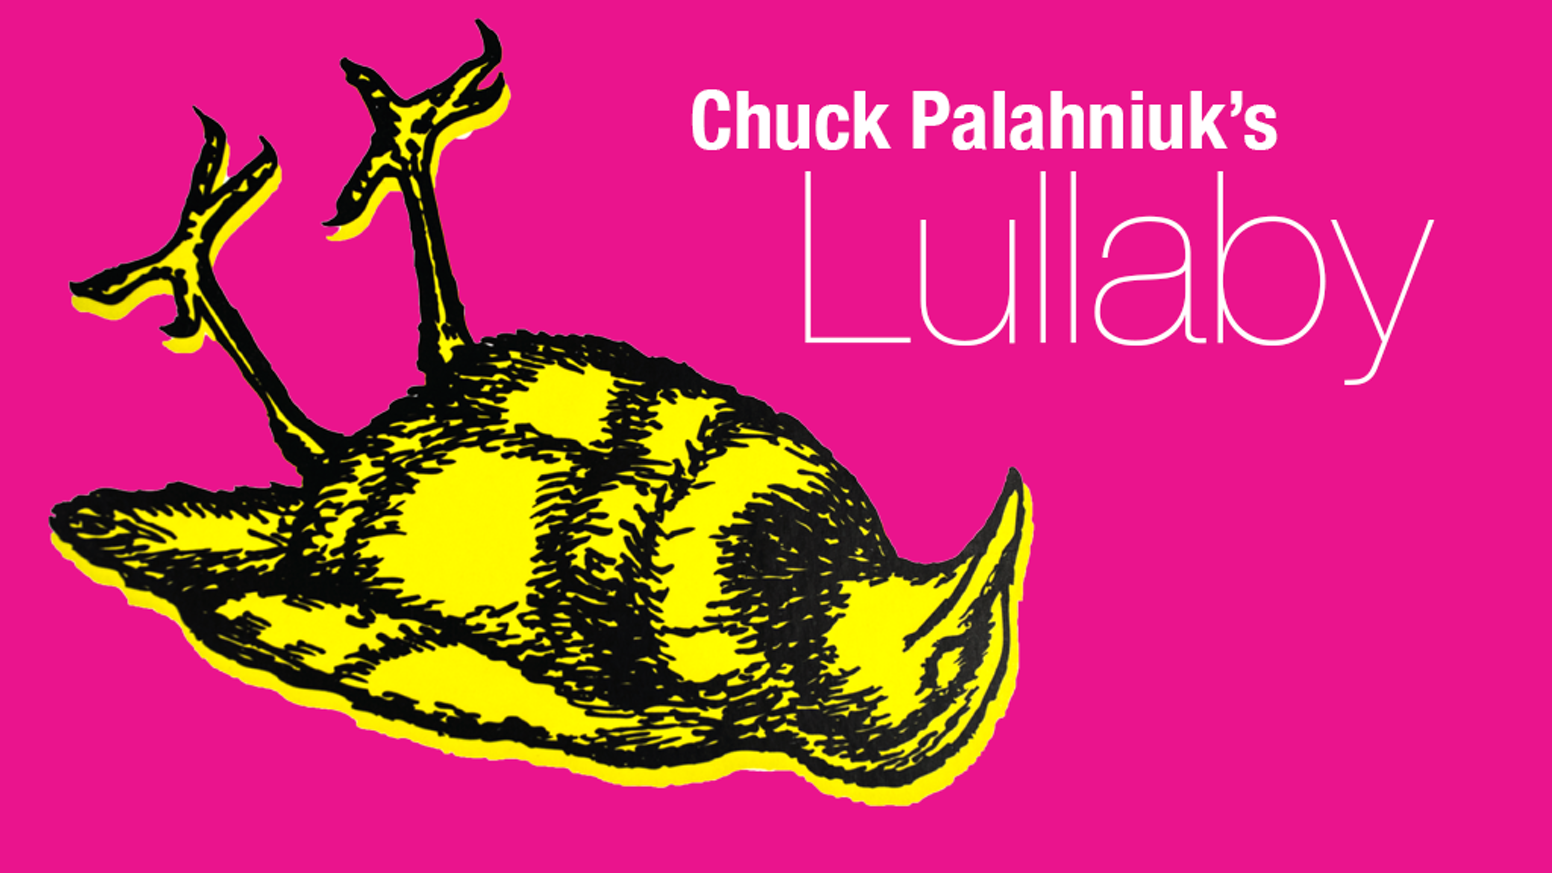 From the mind of Fight Club author, Chuck Palahniuk, comes a once-in-a-lifetime film adaptation of the award-winning novel, Lullaby.